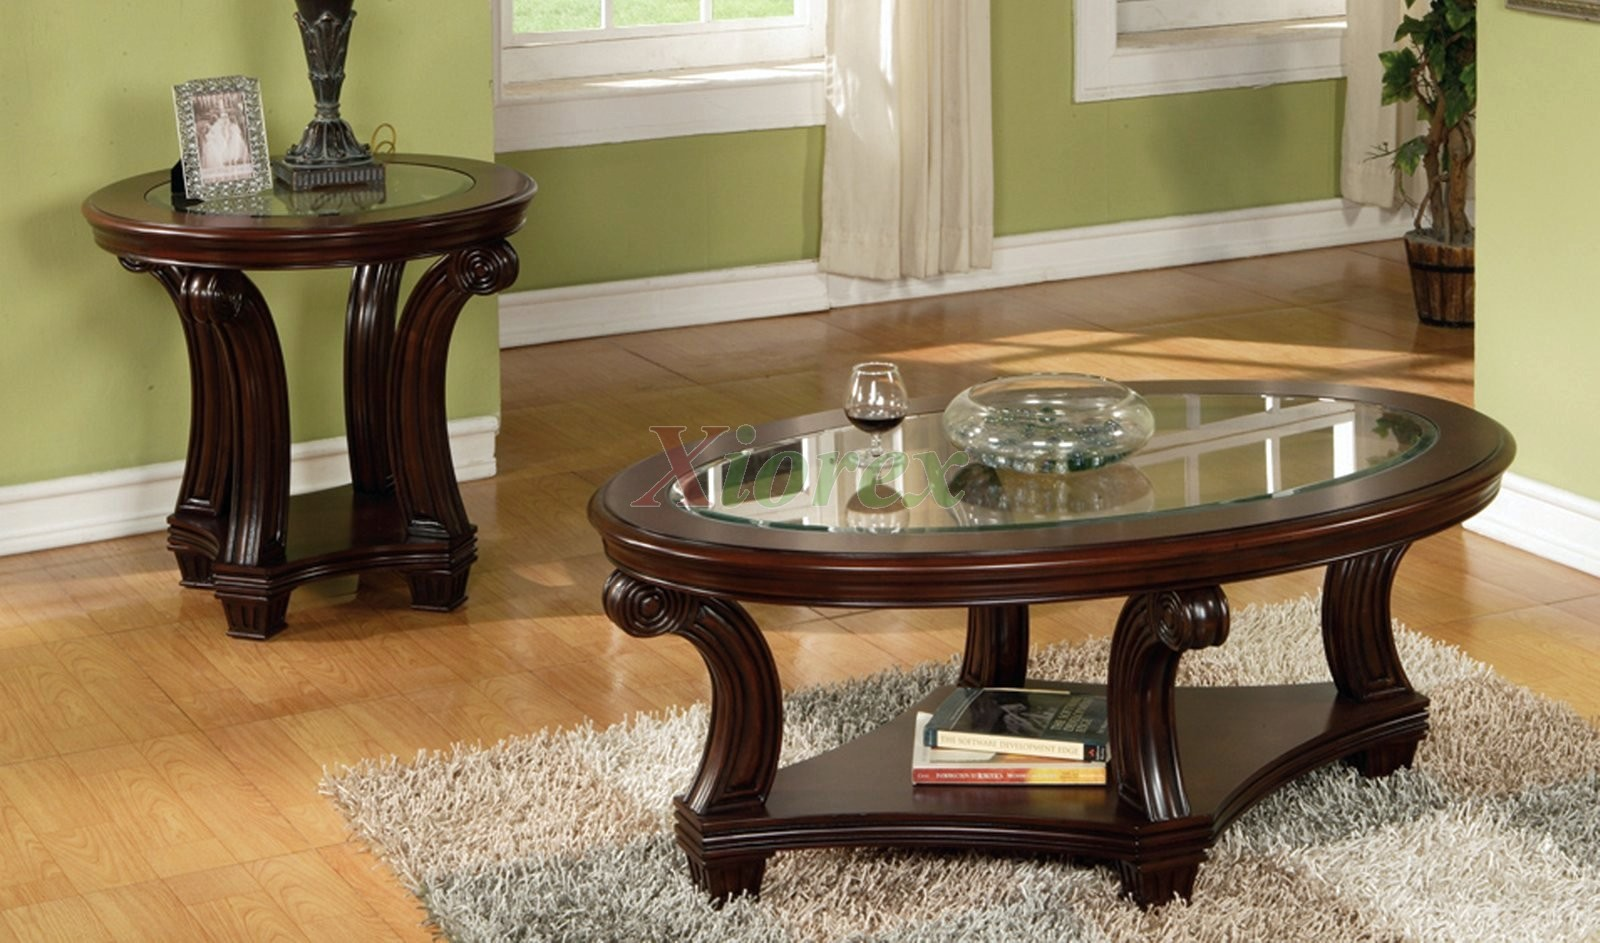 Perseus Glass Top Wooden Coffee Table Set Montreal Round Coffee And End Table Sets Dark Wood Round Side Tables (Image 7 of 10)